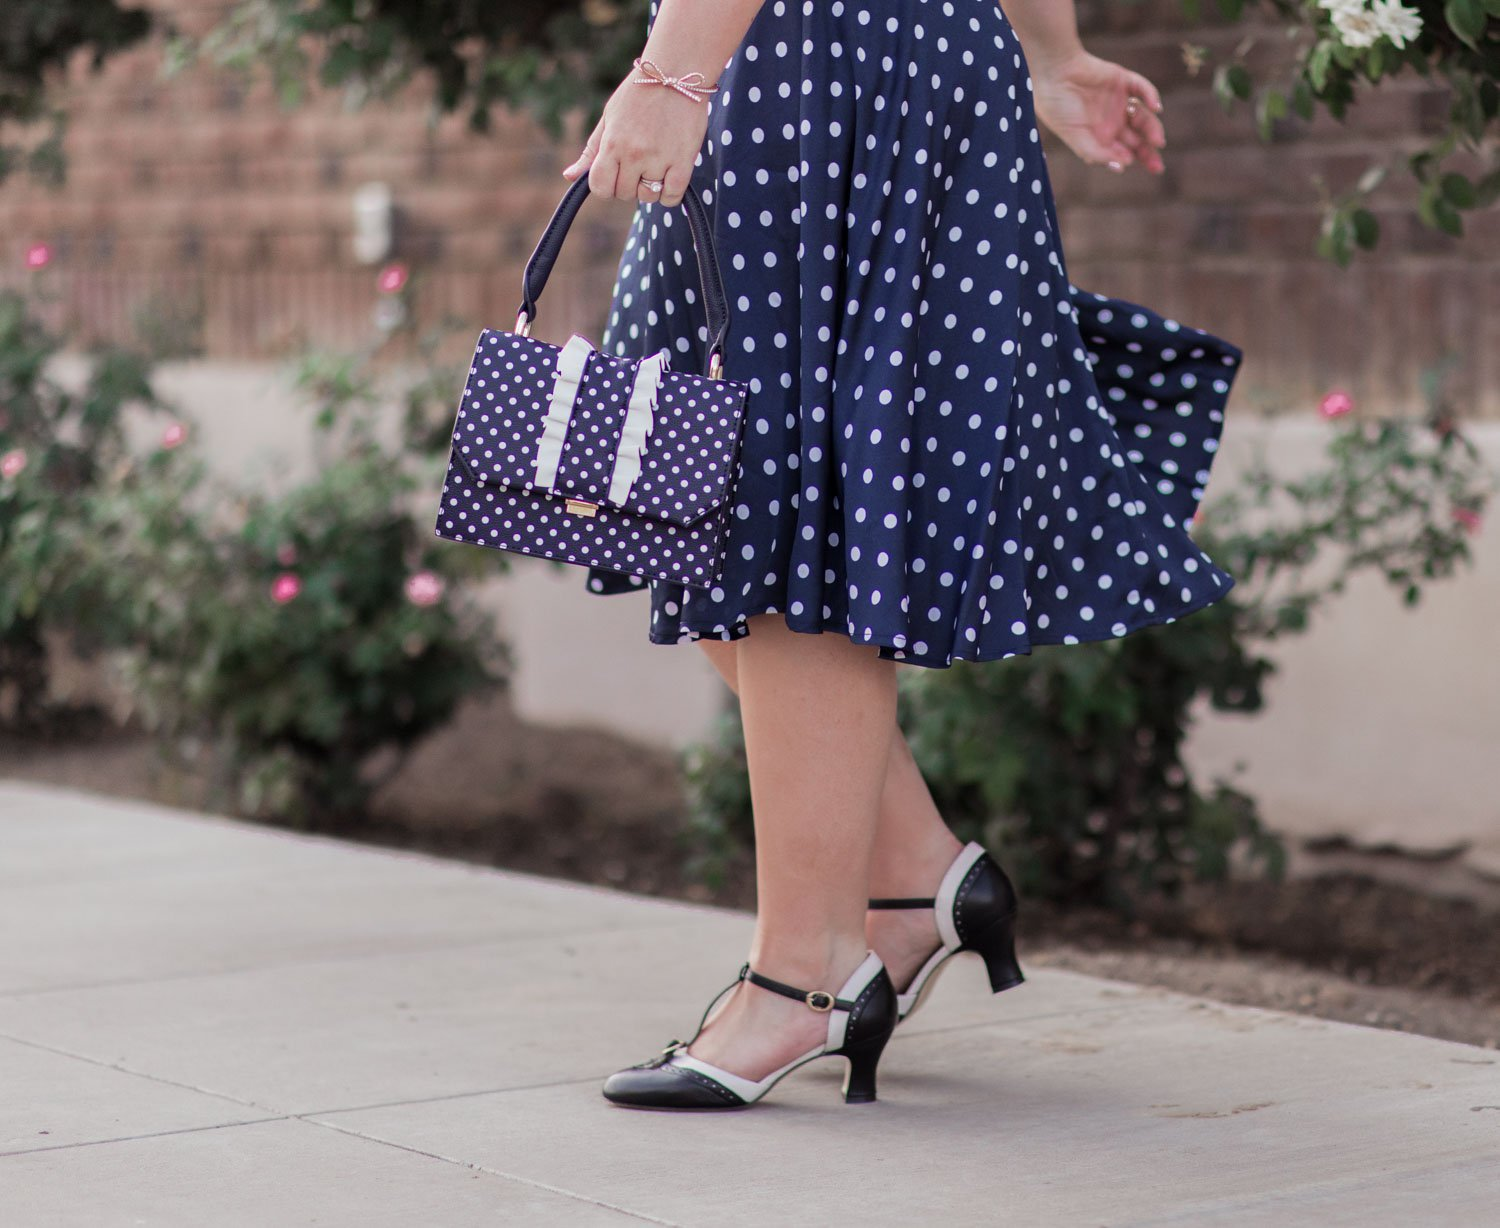 Elizabeth Hugen of Lizzie in Lace shares her girly shoe collection including these vintage style heels